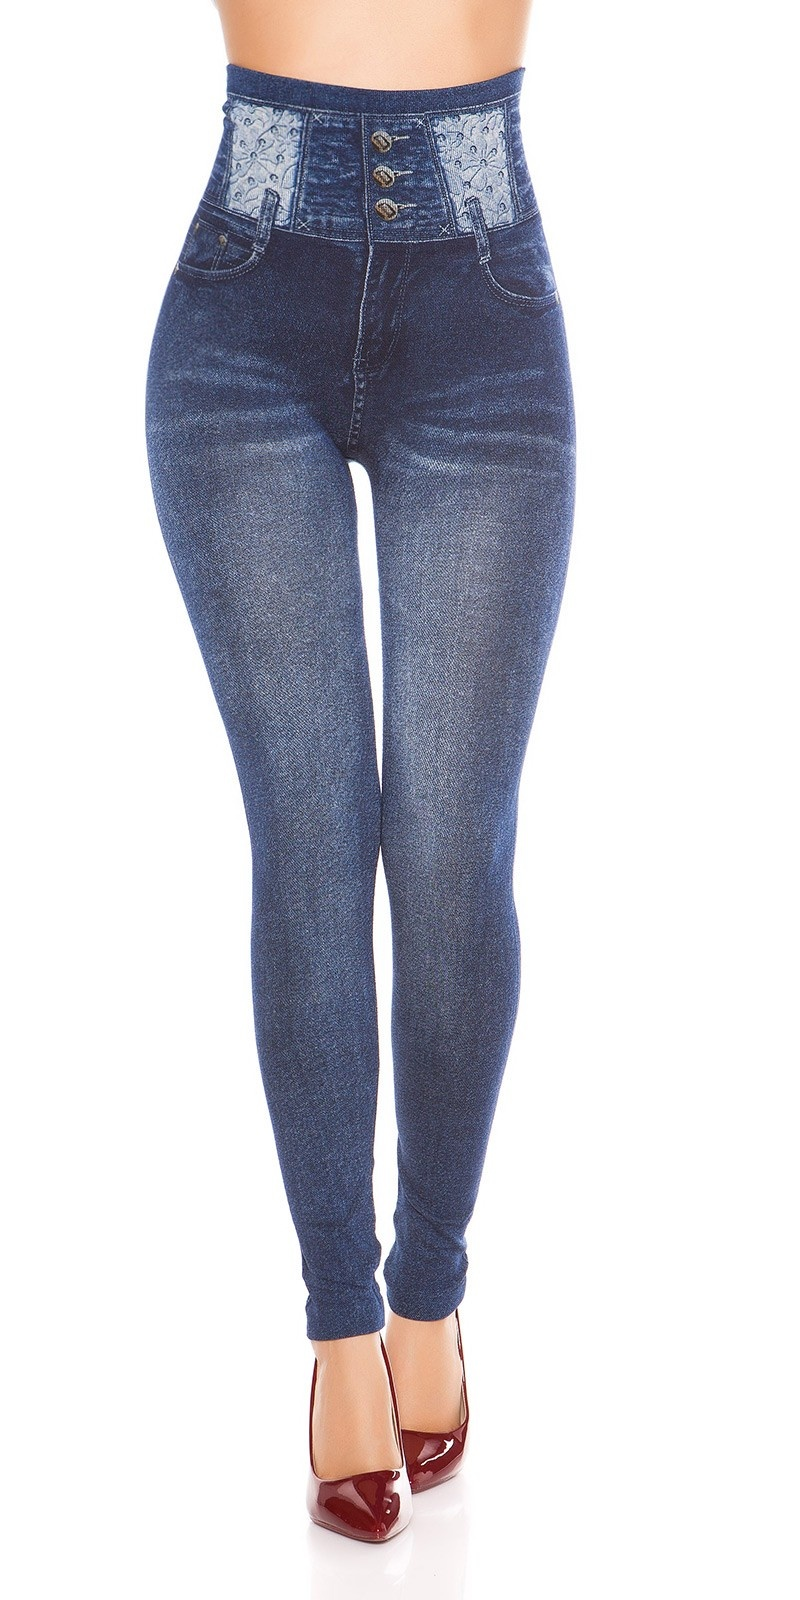 Sexy hoge taille jeanslook leggings jeansblauw